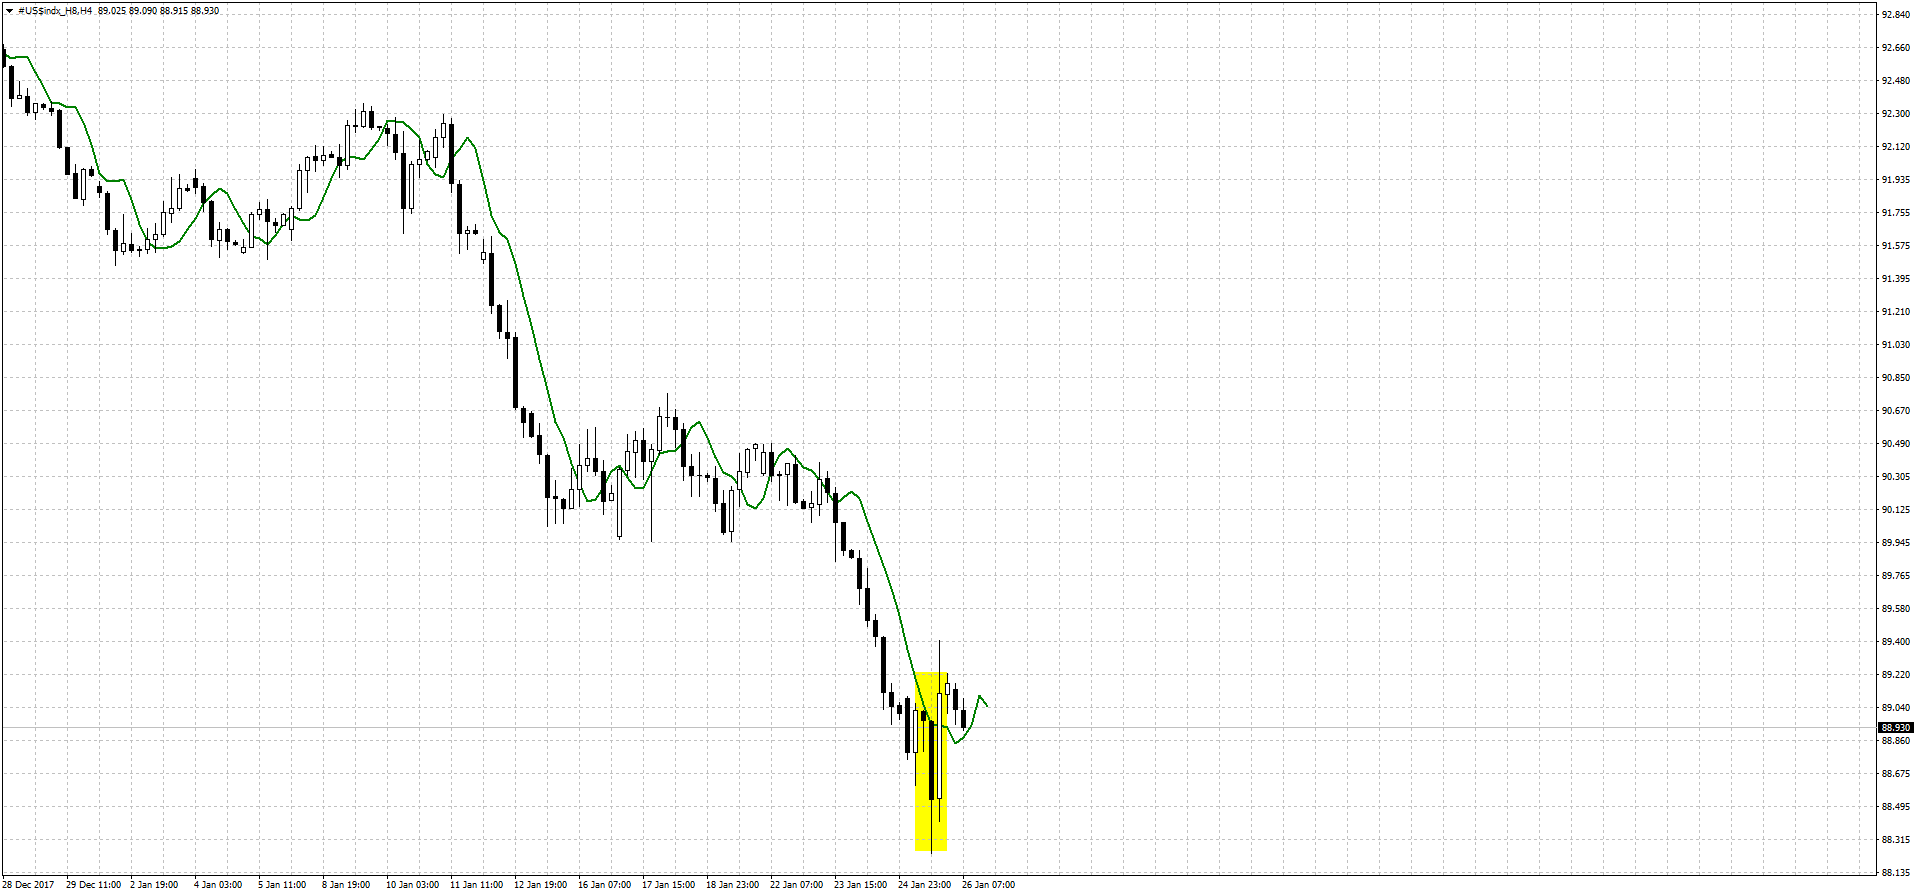 dxy_4h_26_01_18.